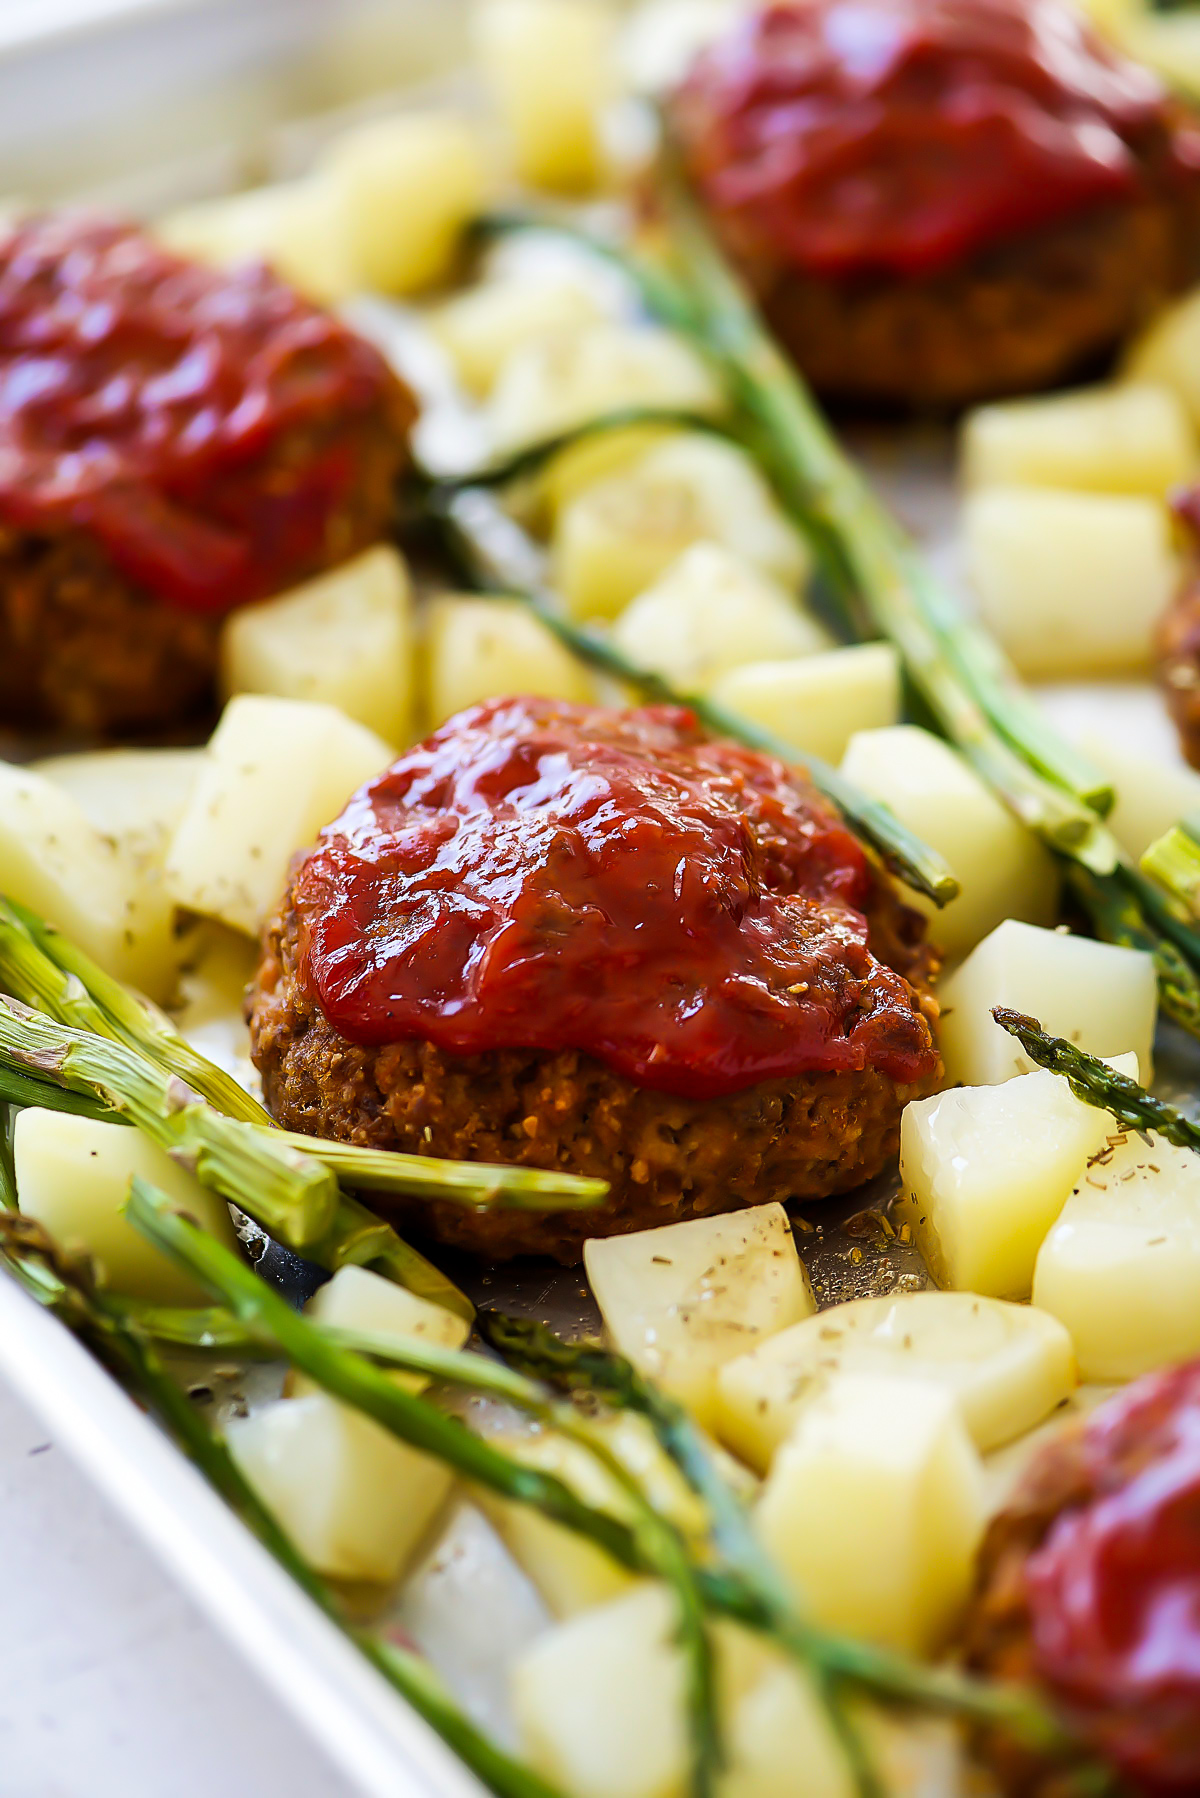 Sheet Pan Meatloaf dinner is individual mini meatloaves, asparagus, and potatoes all cooked to perfection on one pan